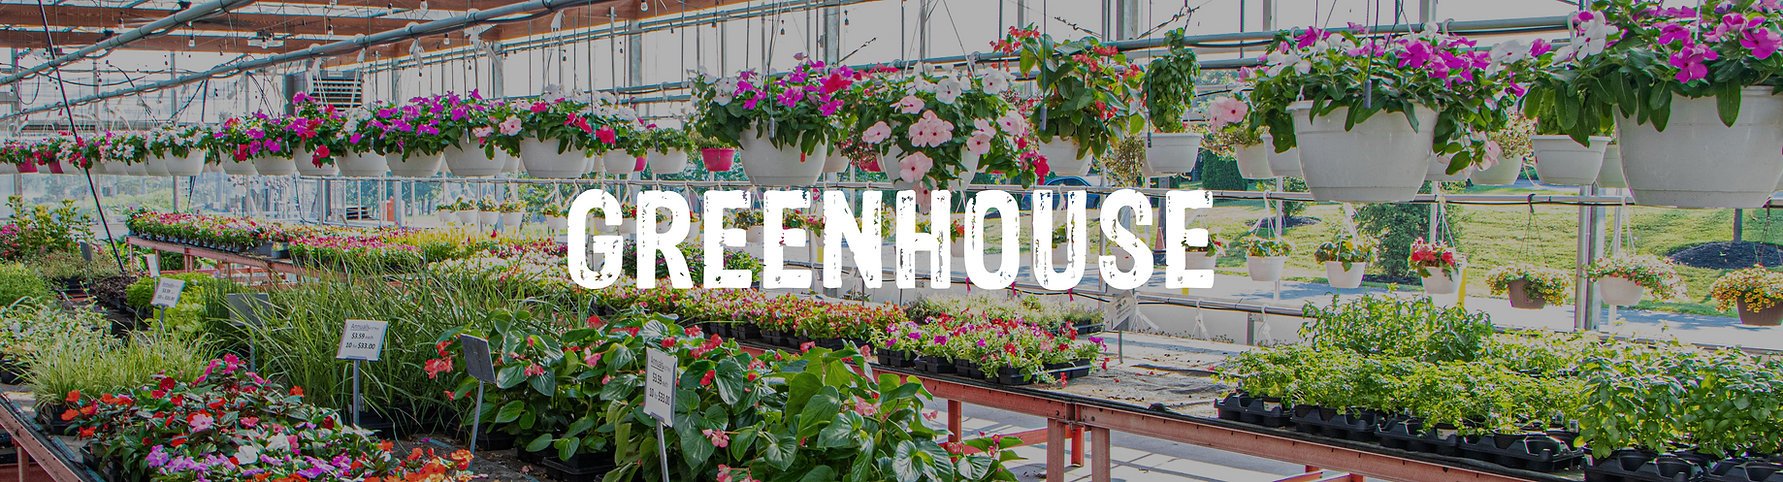 6 - Greenhouse.png